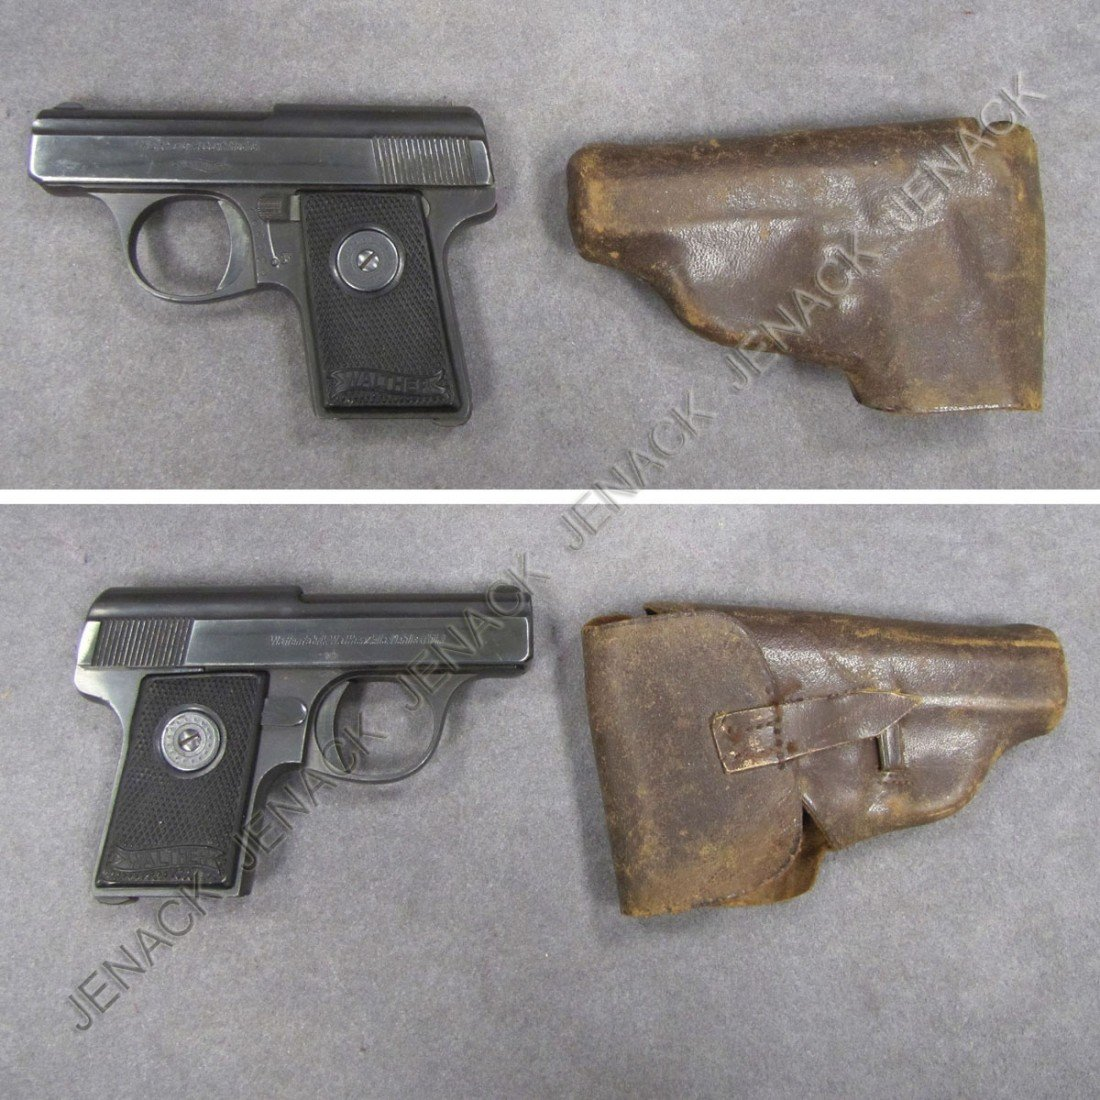 92: **RESTRICTED** WALTHER MODEL 9, 6.35MM PISTOL